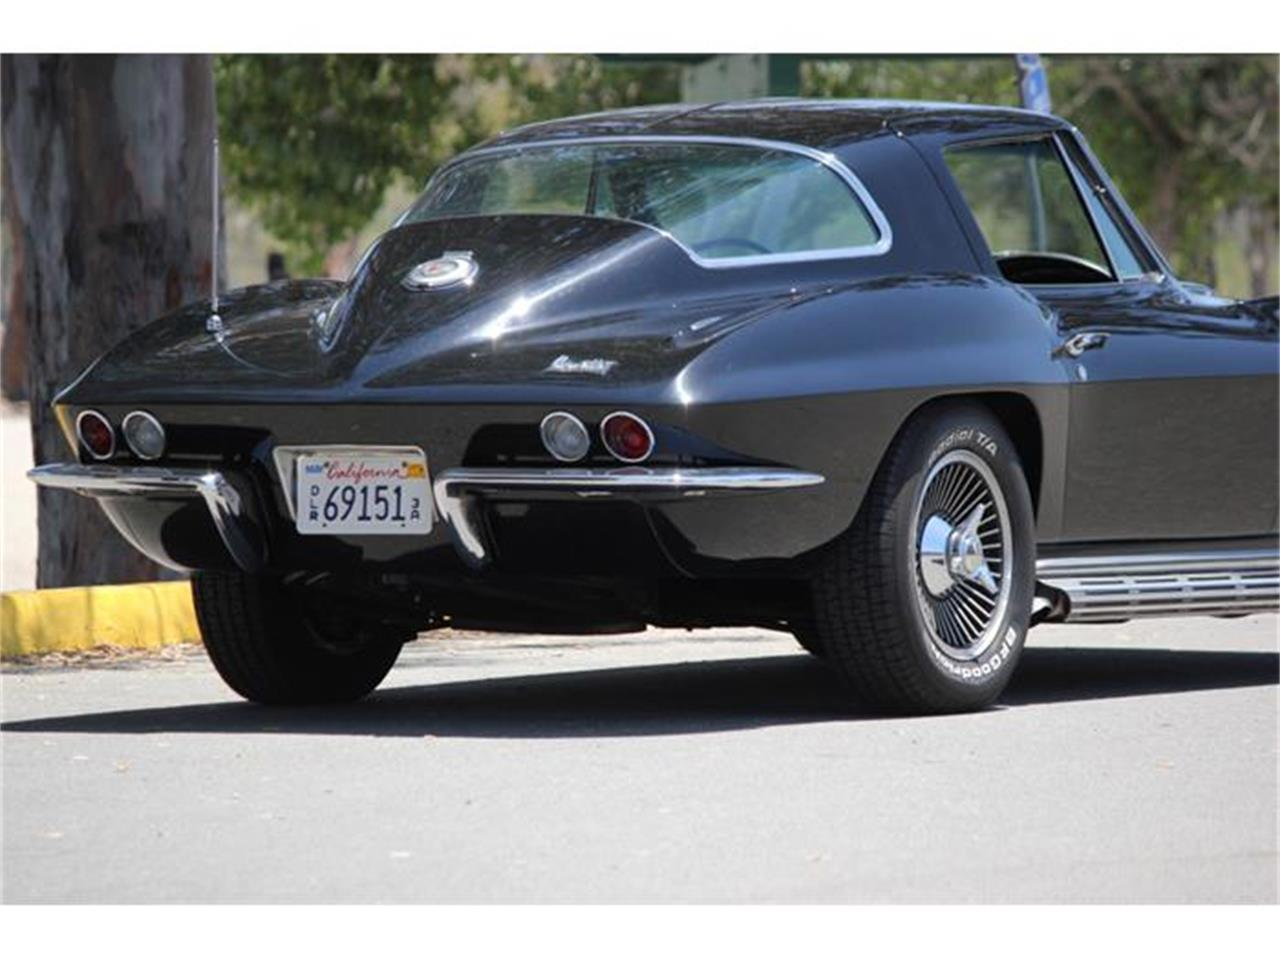 Large Picture of '66 Corvette located in California - $110,000.00 Offered by Precious Metals - EU77